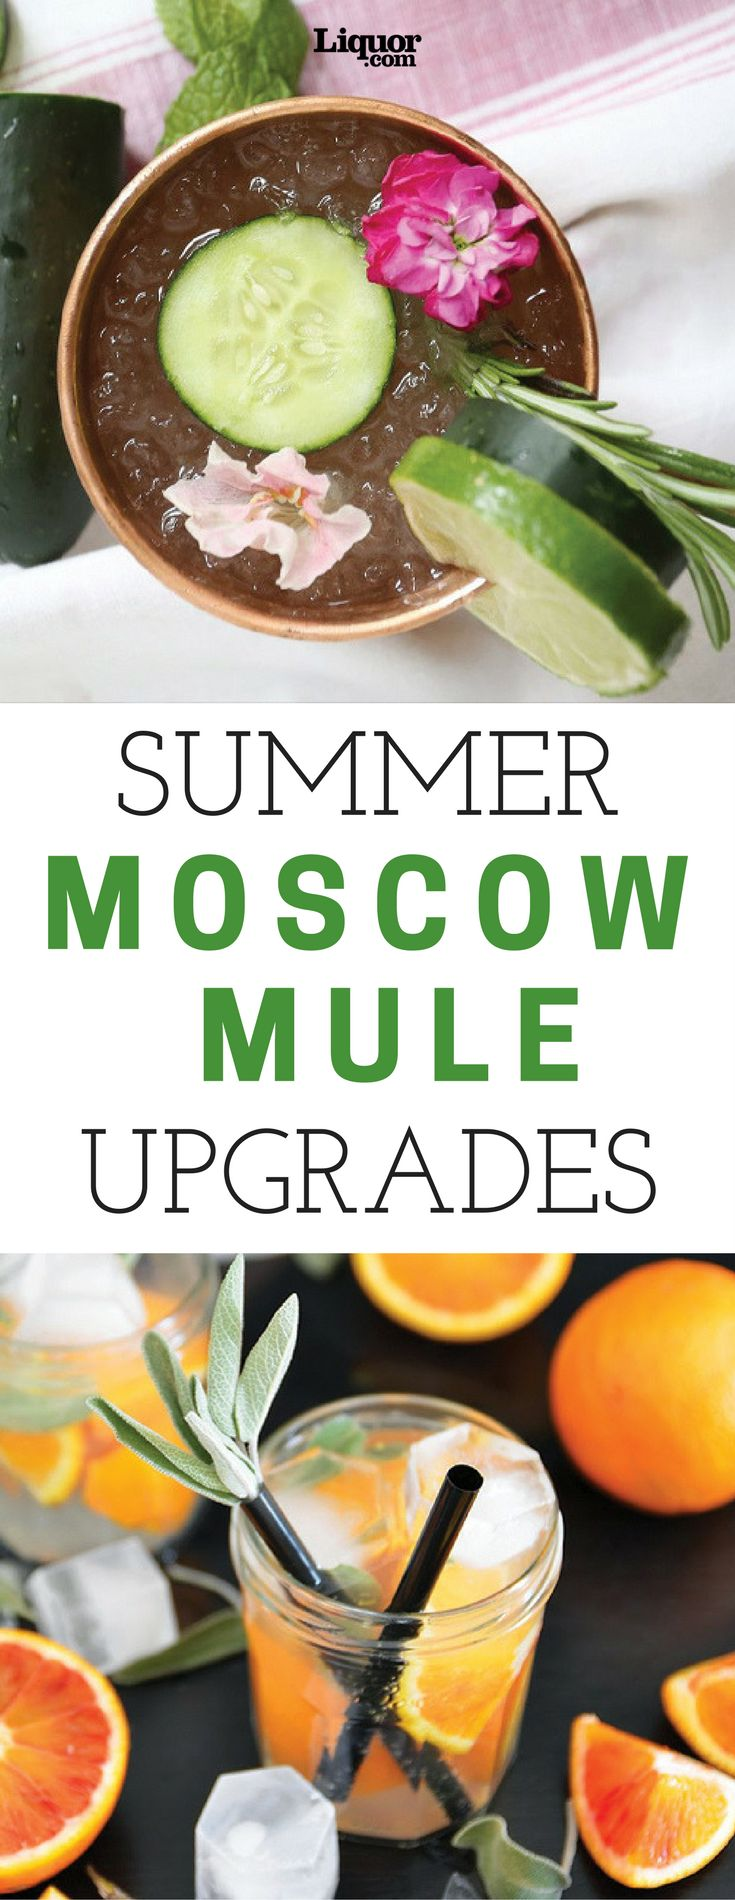 The Moscow Mule has its simple formula to thank for the drink's survival. With its future assured, now's the time to start messing around.  Dress your Mule in summer's finest, starting with garden-fresh herbs, crisp chilled melon and even bright pink prickly pear.